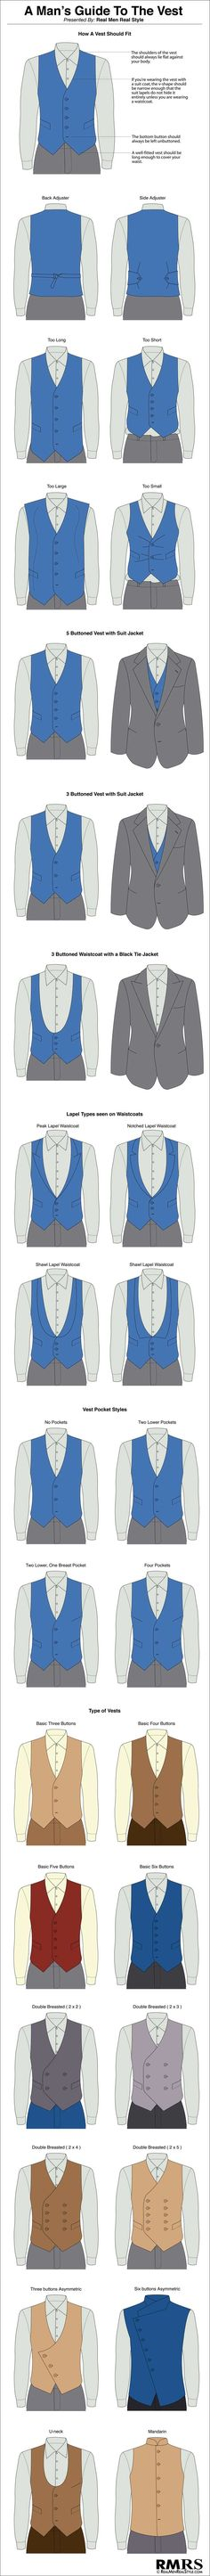 How To Buy A Vest | Ultimate Guide To The Waistcoat (via @antoniocenteno)